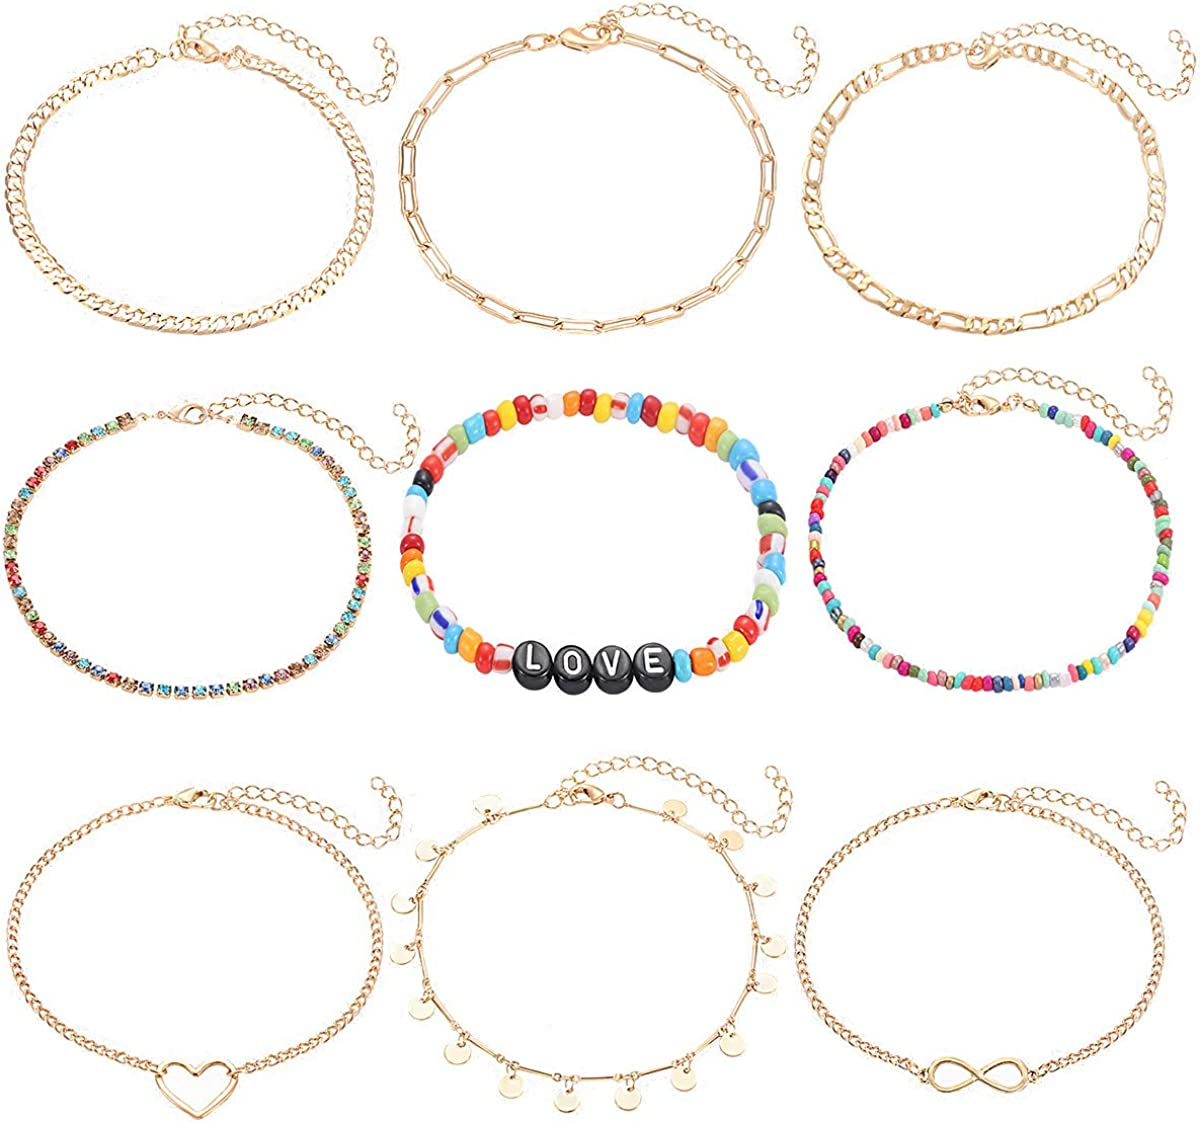 PHALIN 9PCS Boho Anklets for Women Girls Layered Link Chain Ankle Bracelet Set Rainbow Crystal Bead Love Letter Anklets Adjustable Summer Beach Foot Jewelry